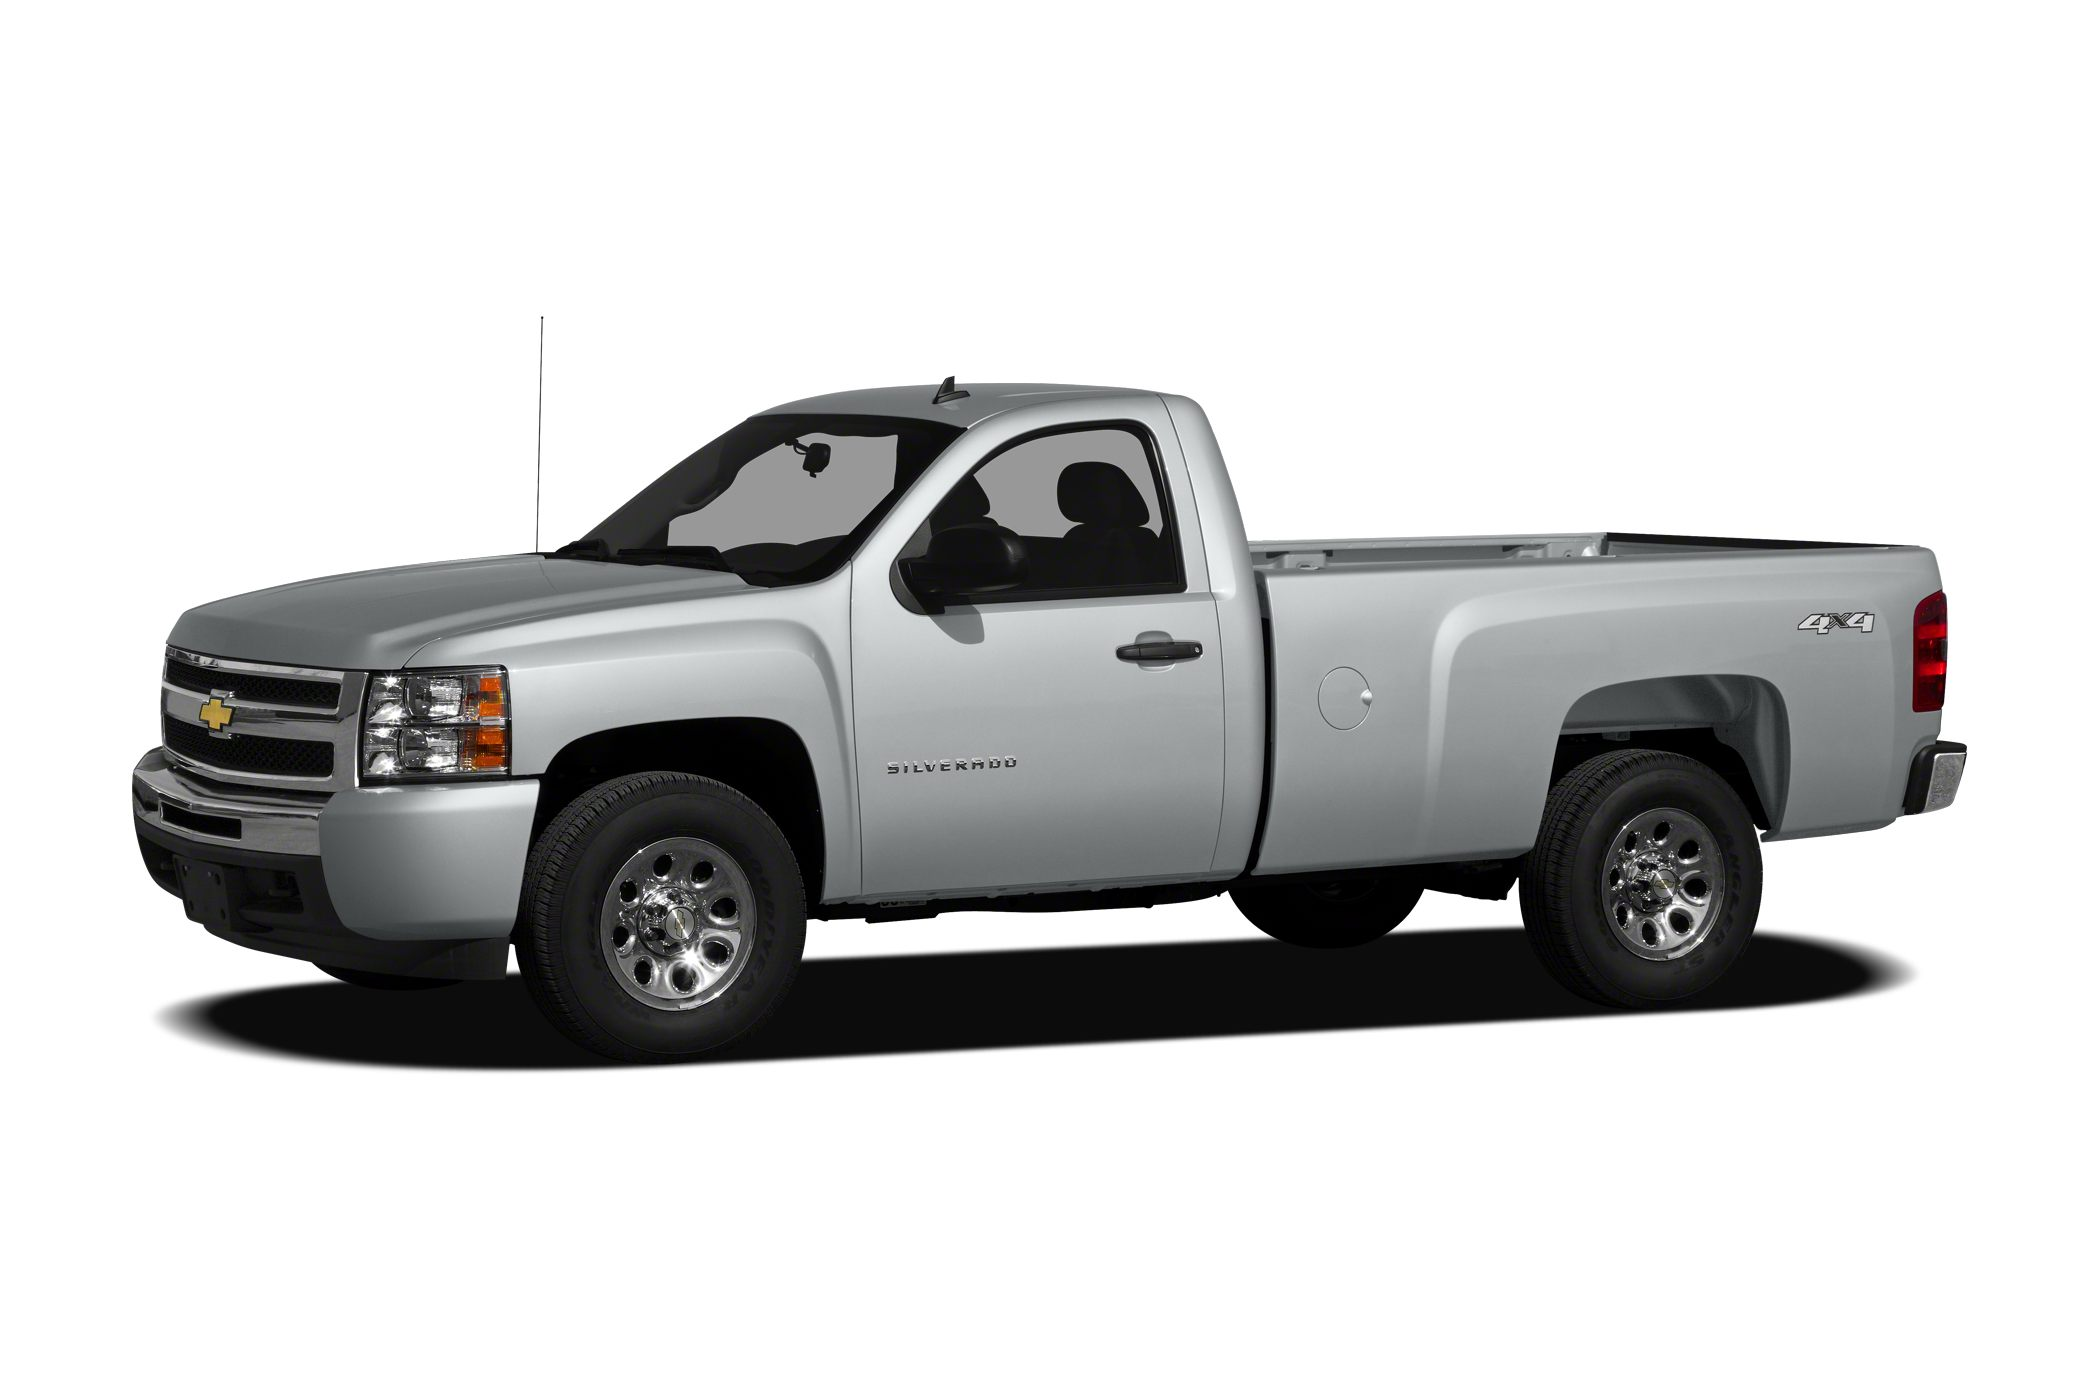 2012 Chevrolet Silverado 1500 LT Extended Cab Pickup for sale in Dilley for $21,495 with 92,313 miles.